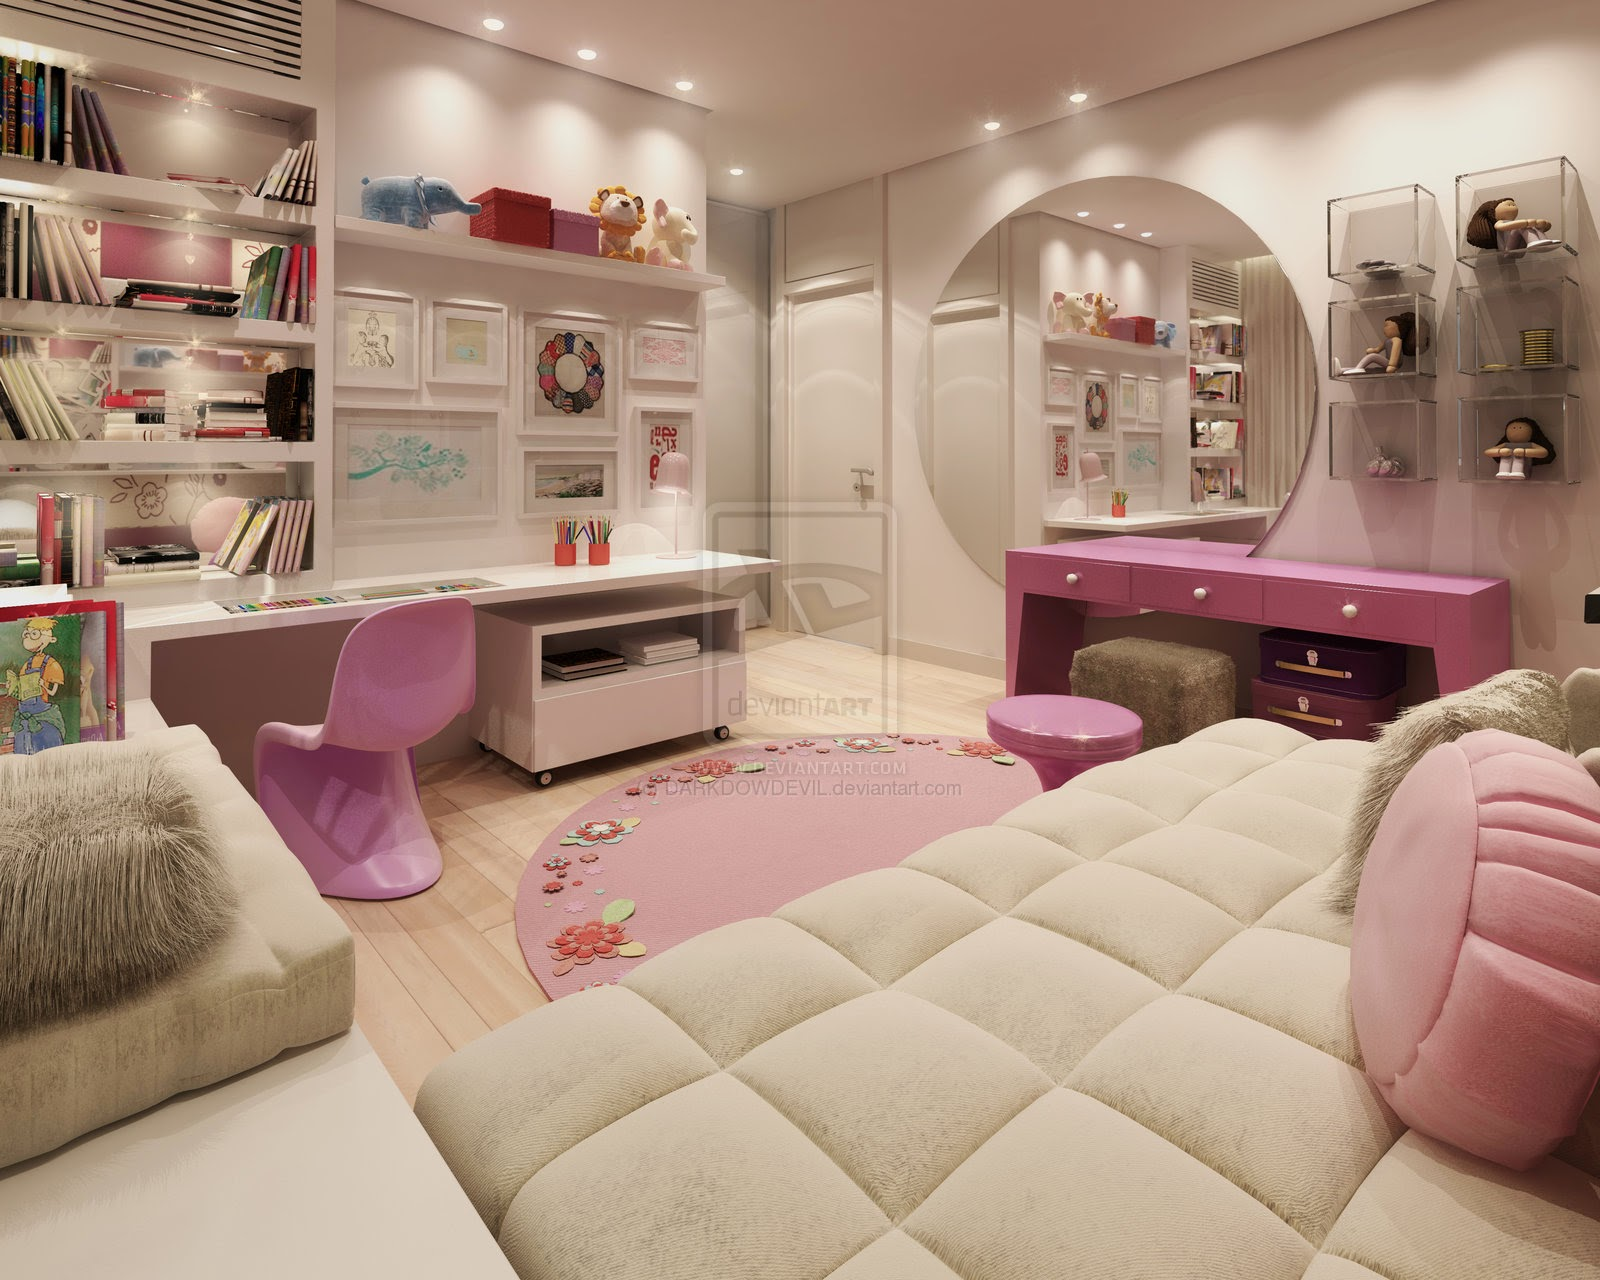 50 Awesome Bedroom Ideas: Girls And Teenage Bedroom Designs Girls And Teenage